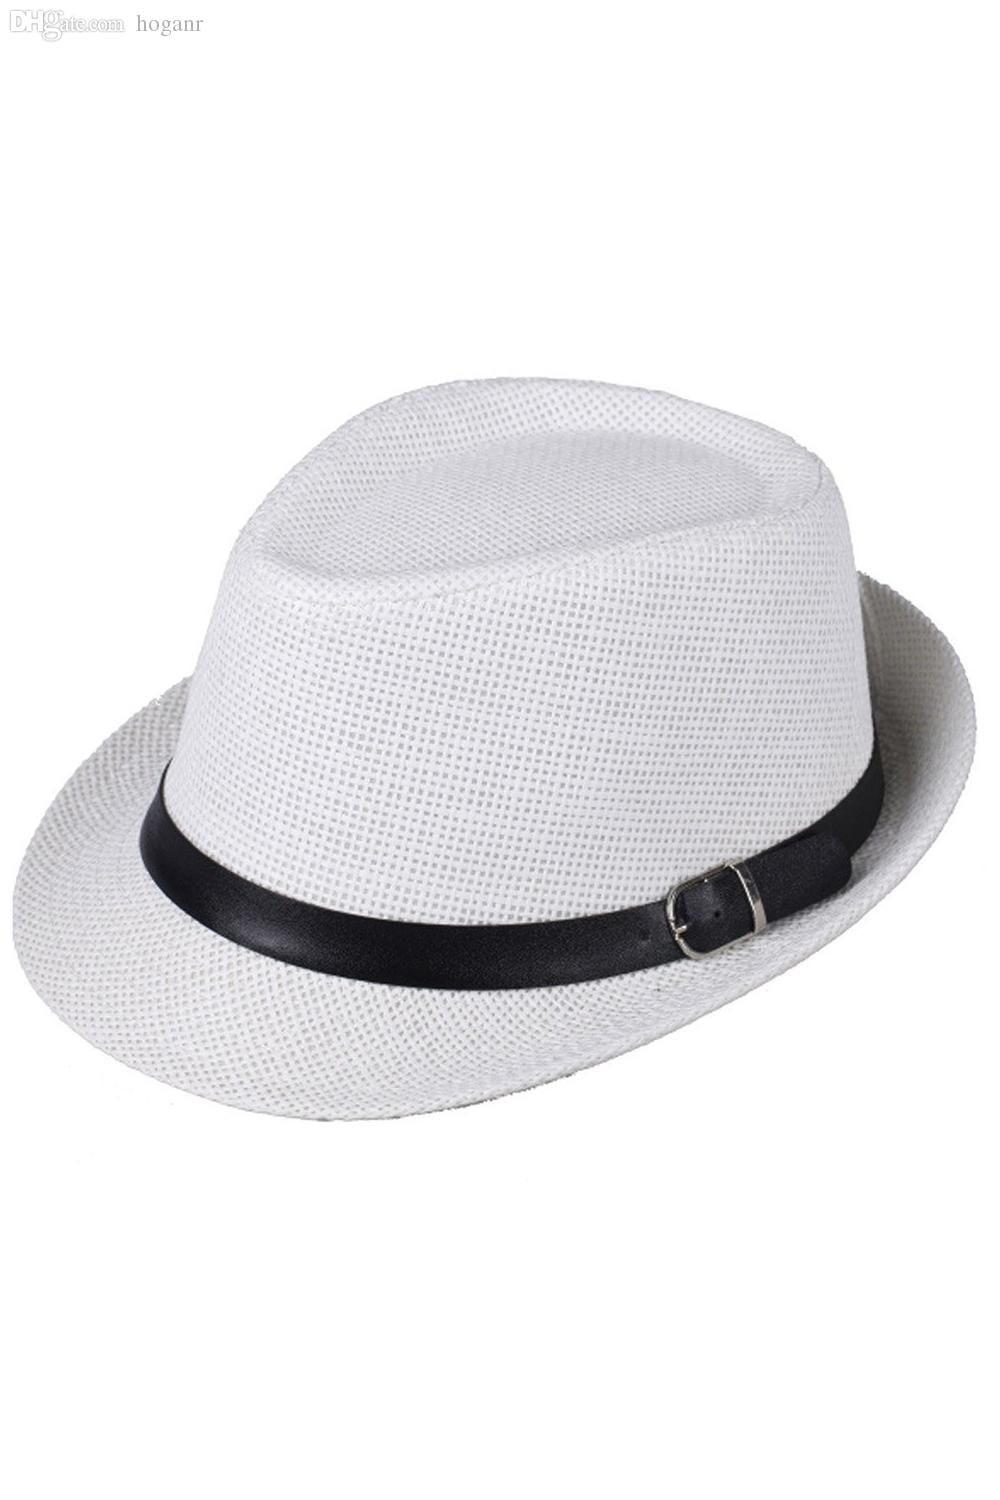 0fe718276 Wholesale-Hat Boys Fedoras Trilby Cap Straw Beach Sunhat with Belt White